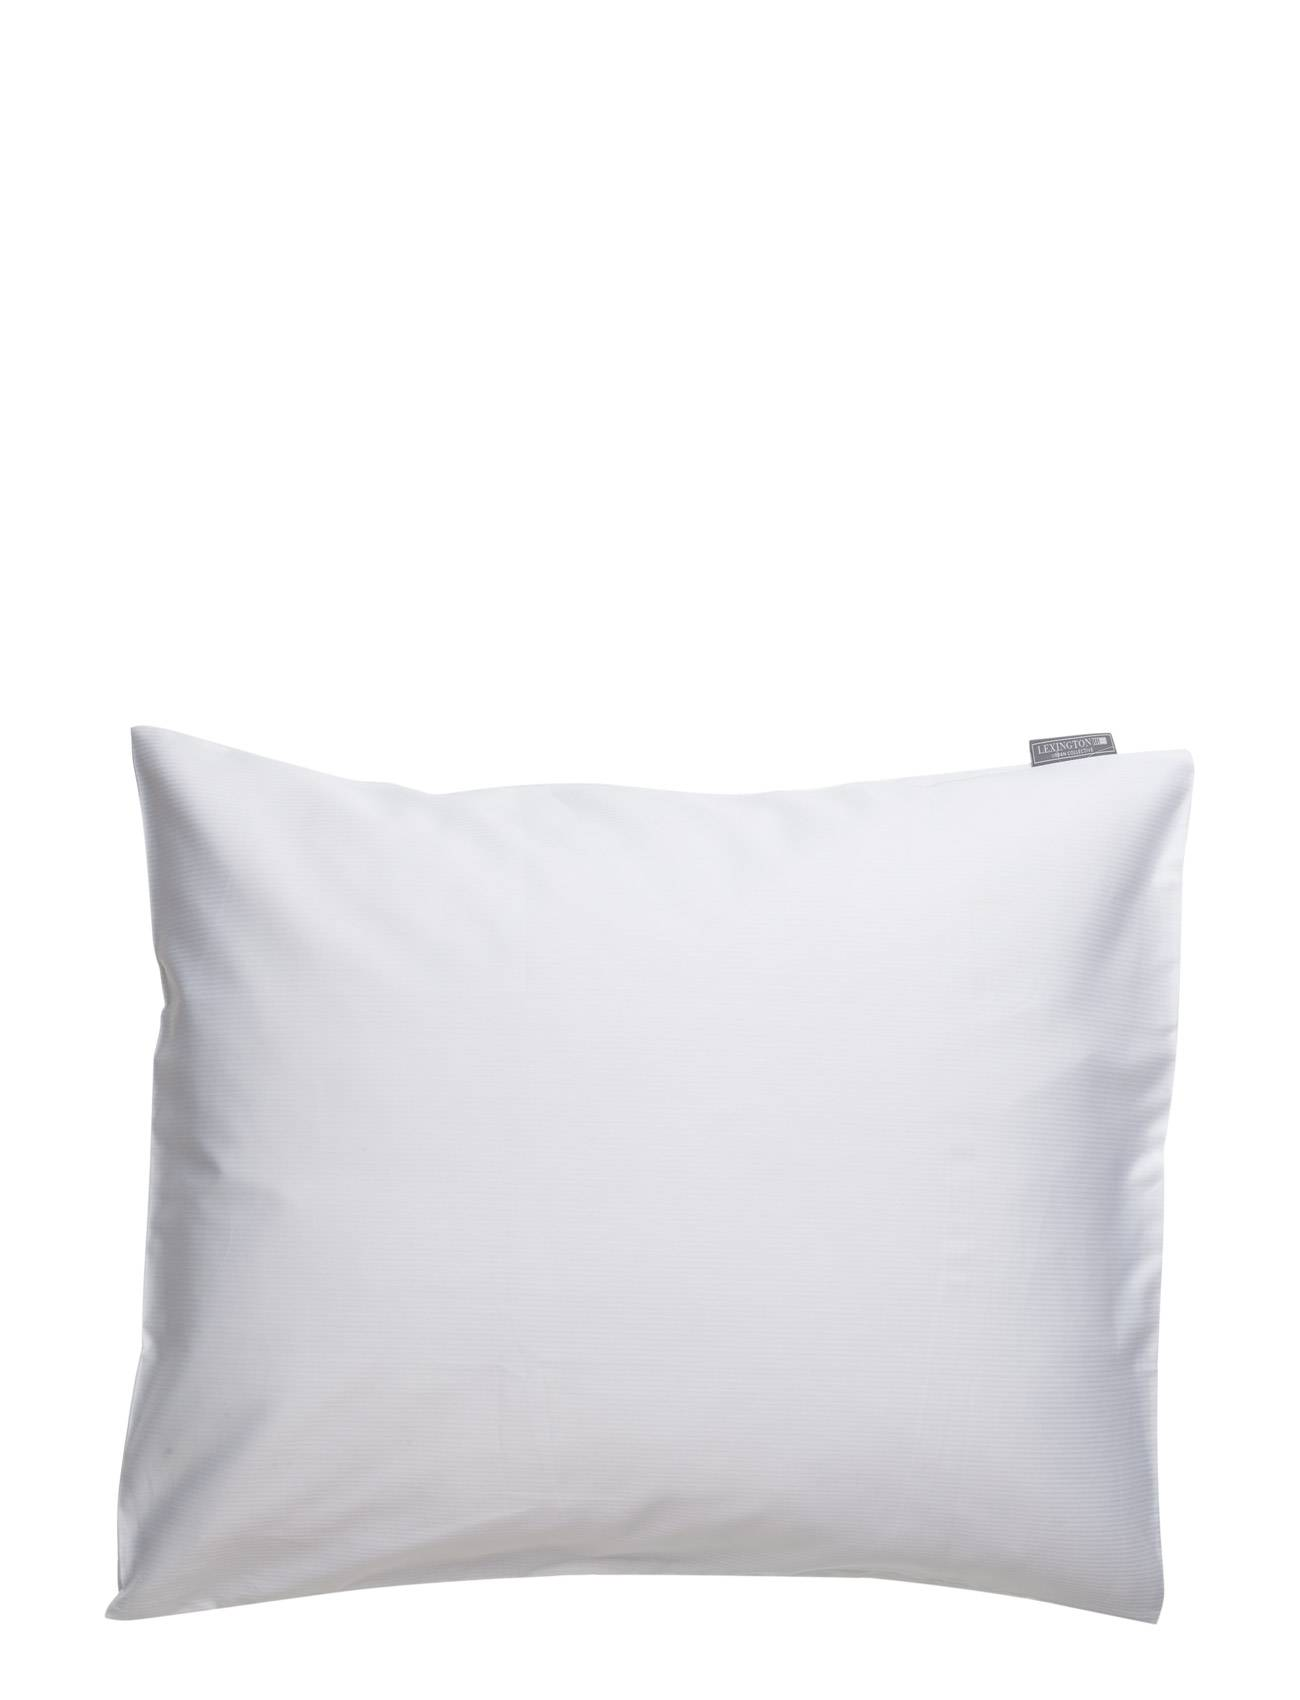 Lexington Company Home Urban White Pillowcase